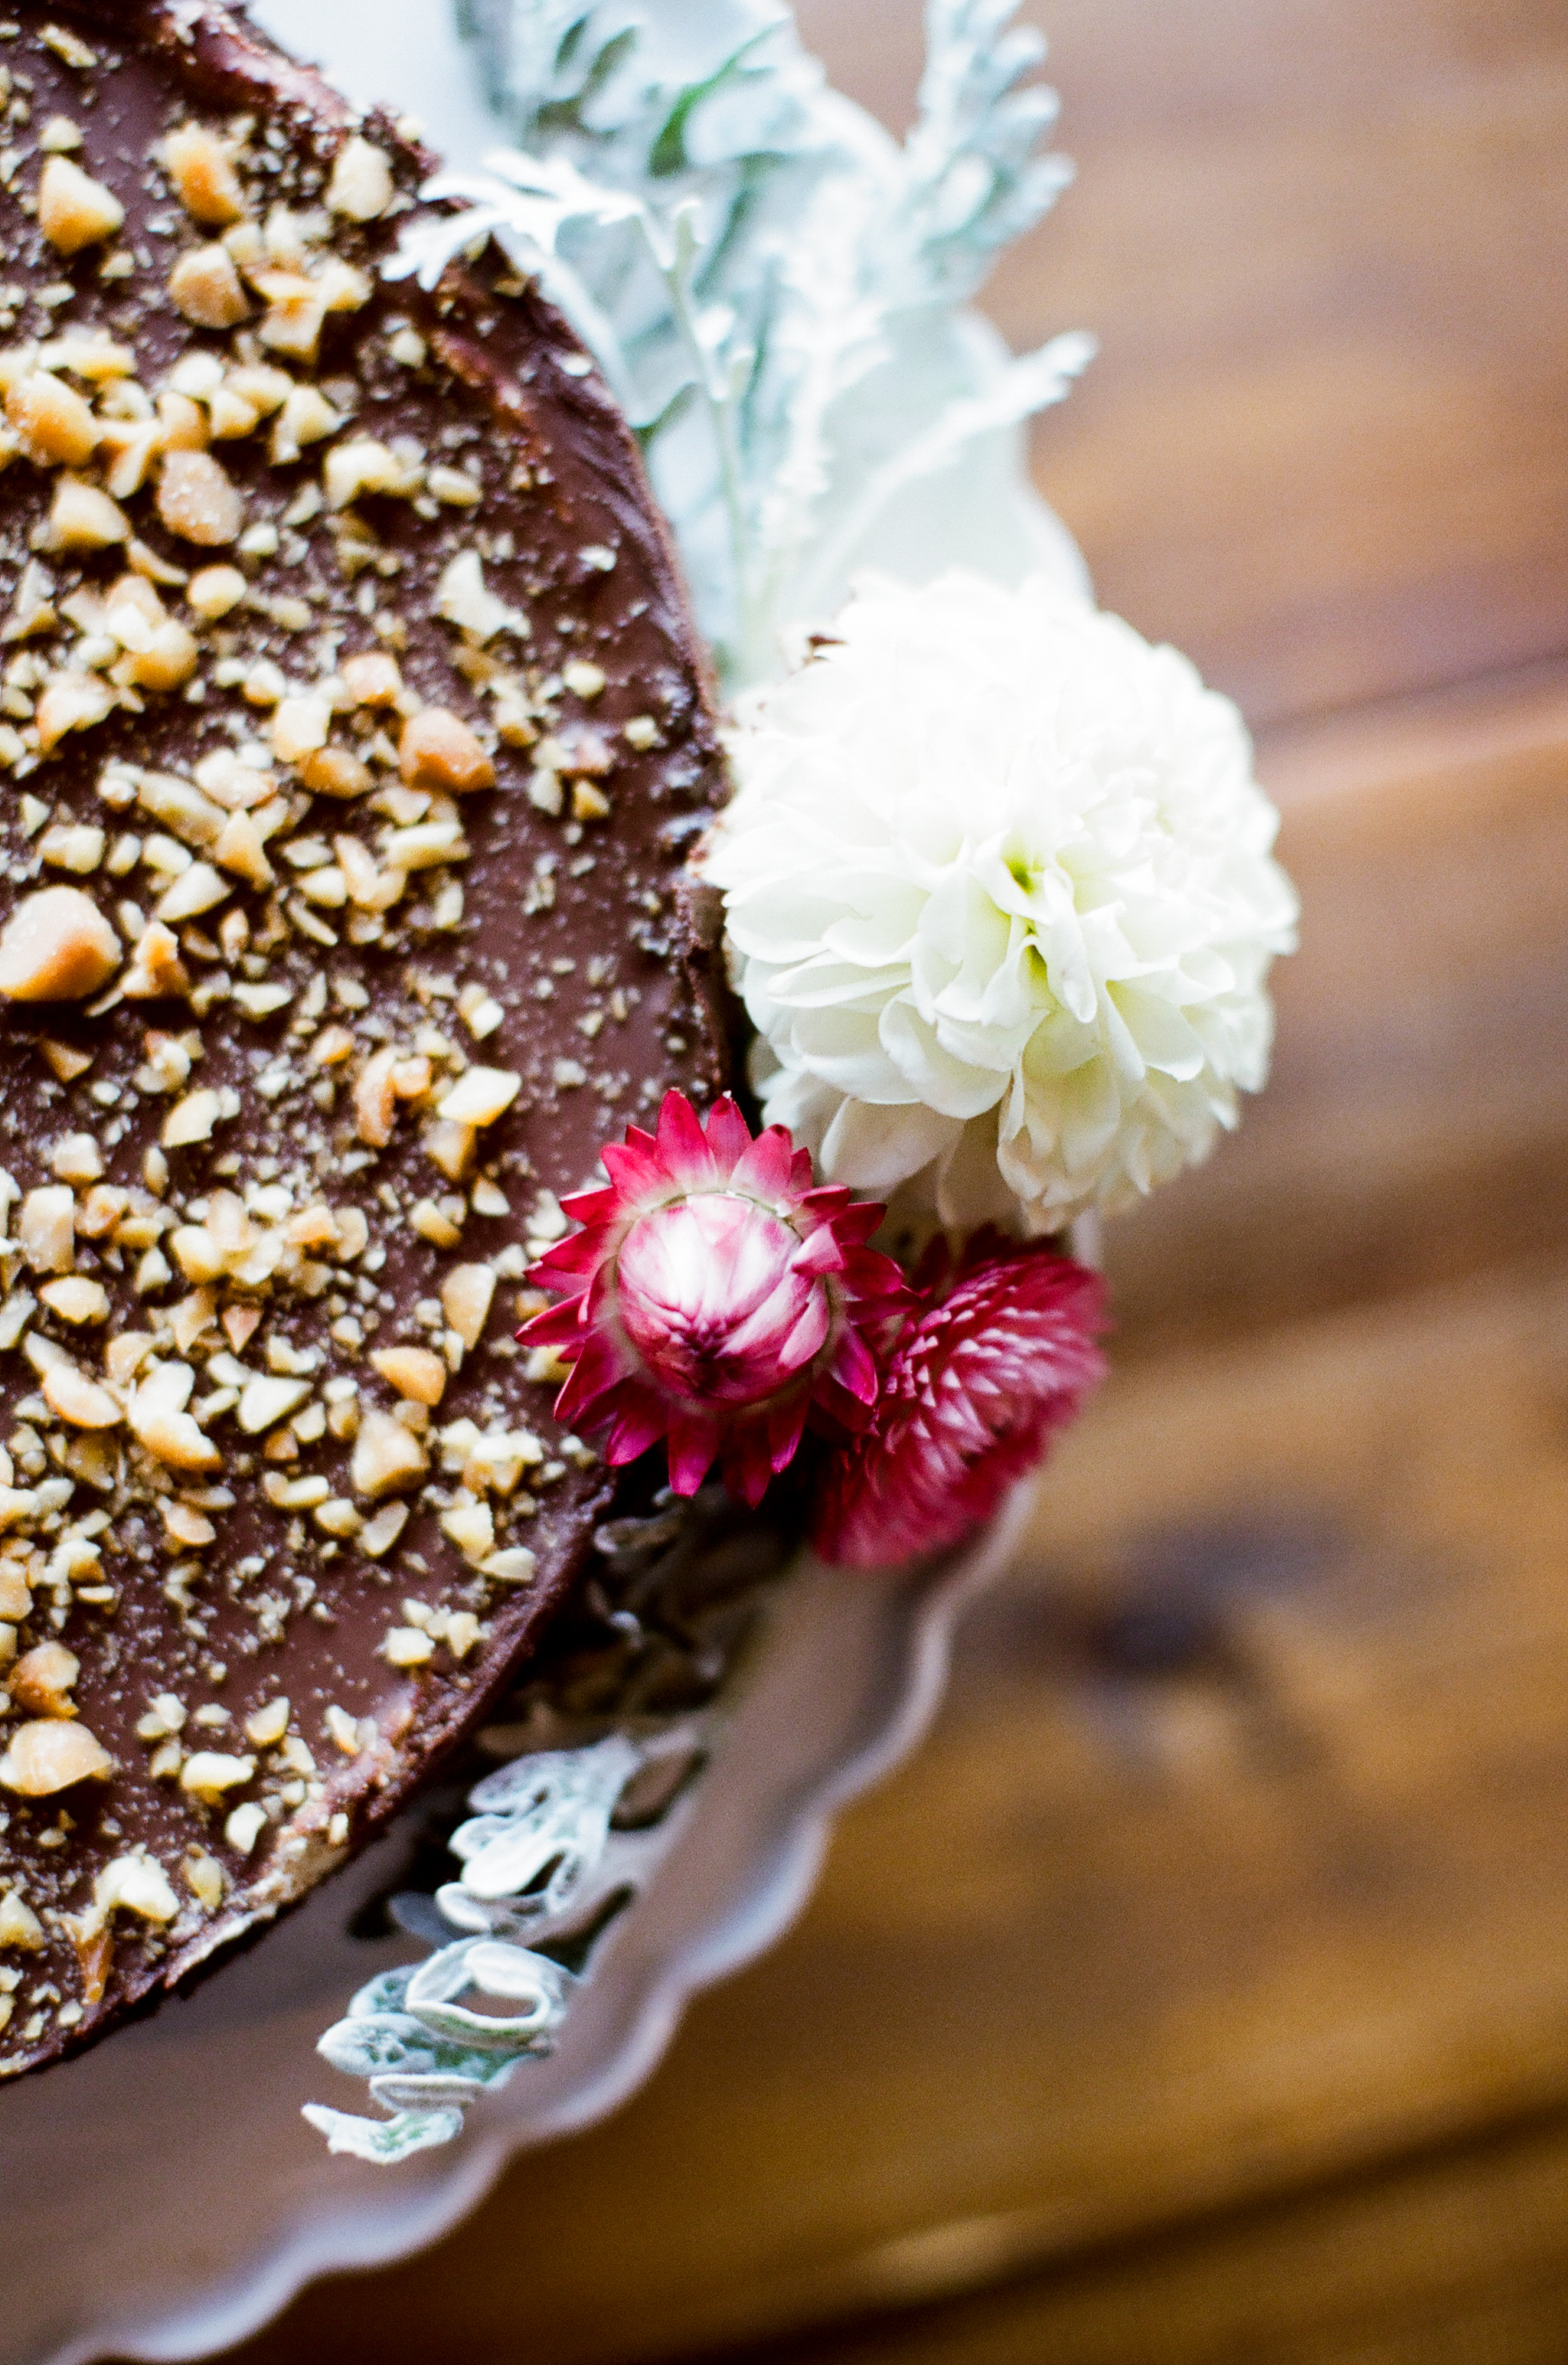 Chocolate Peanut Butter Pie © Meredith Perdue